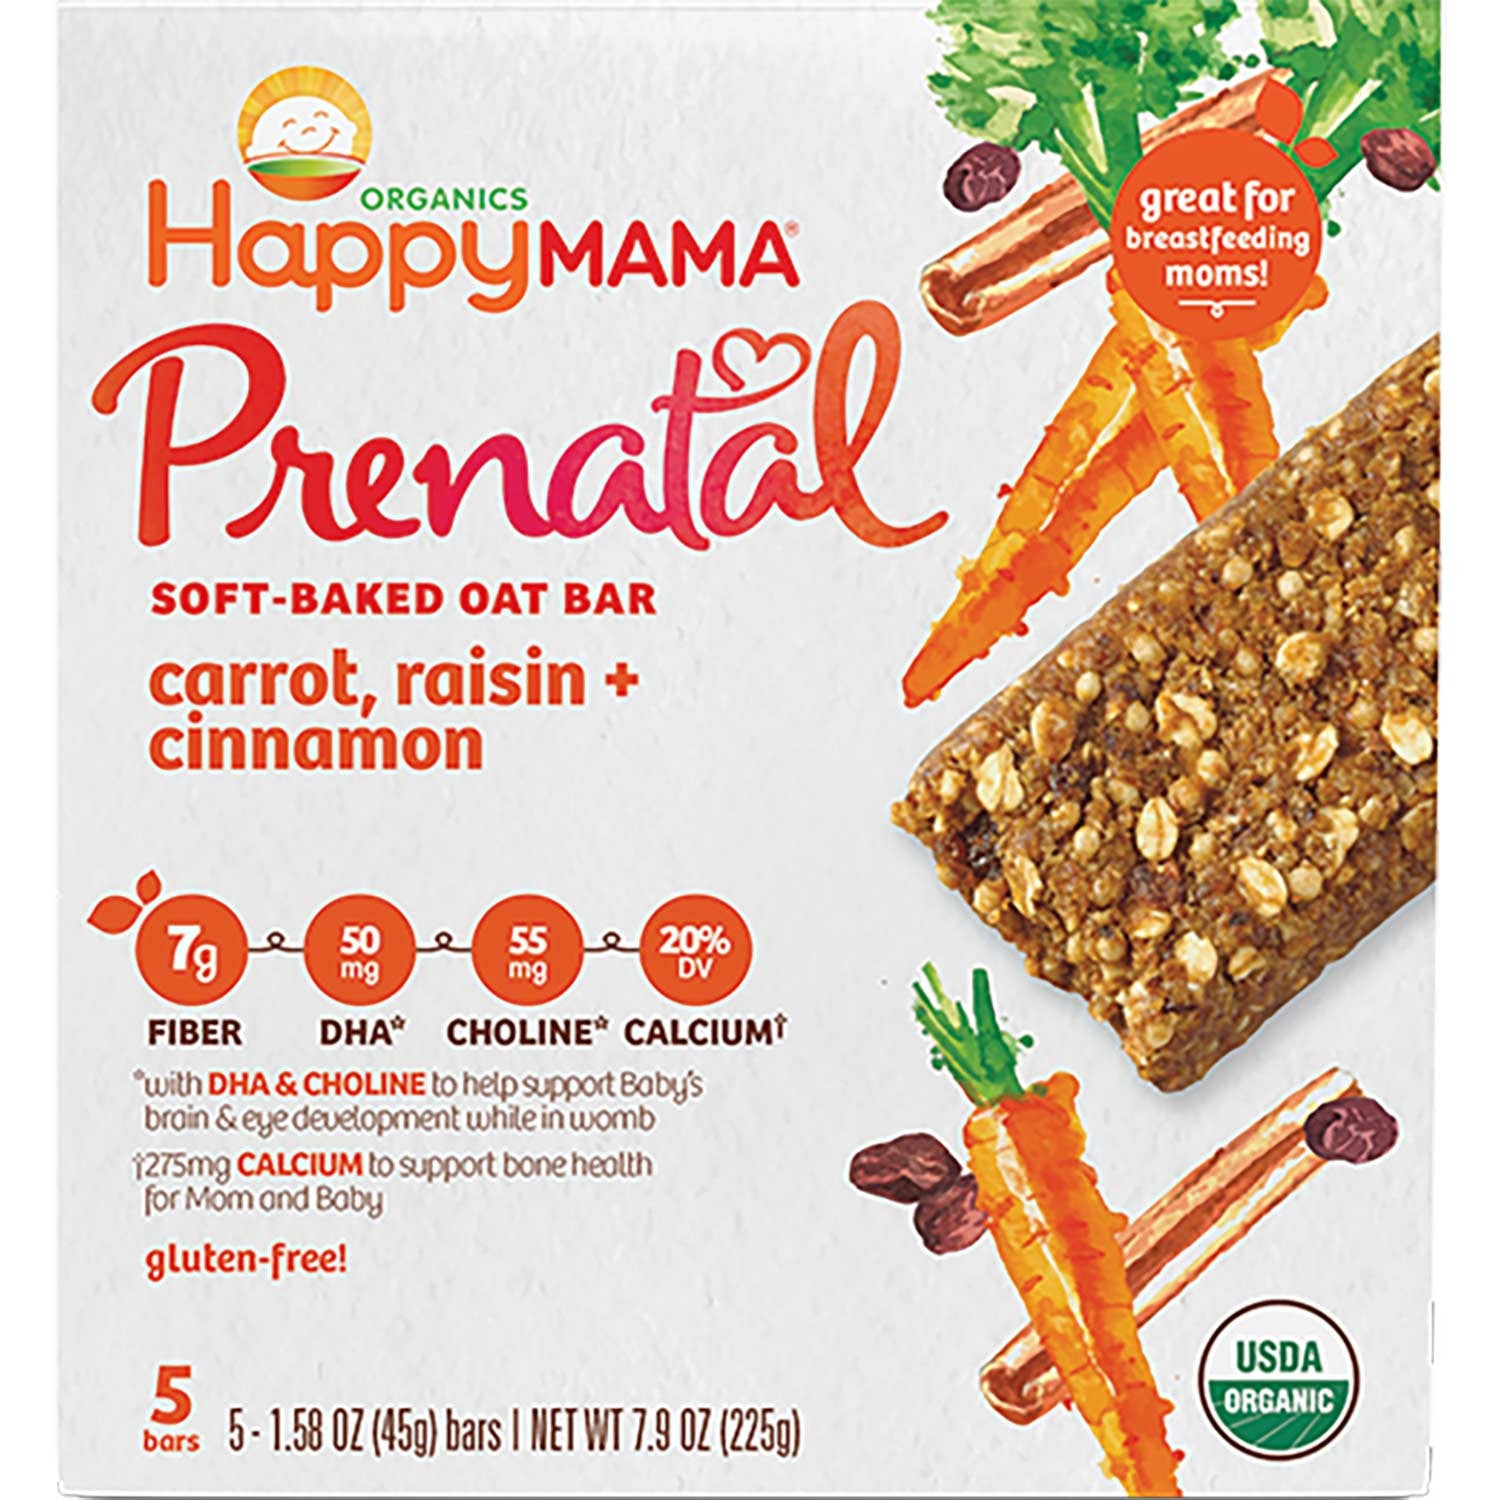 Happy Family Happy Mama Prenatal Soft-Baked Oat Bar - Carrot, Raisin & Cinnamon, 5 x 45 g.-NaturesWisdom